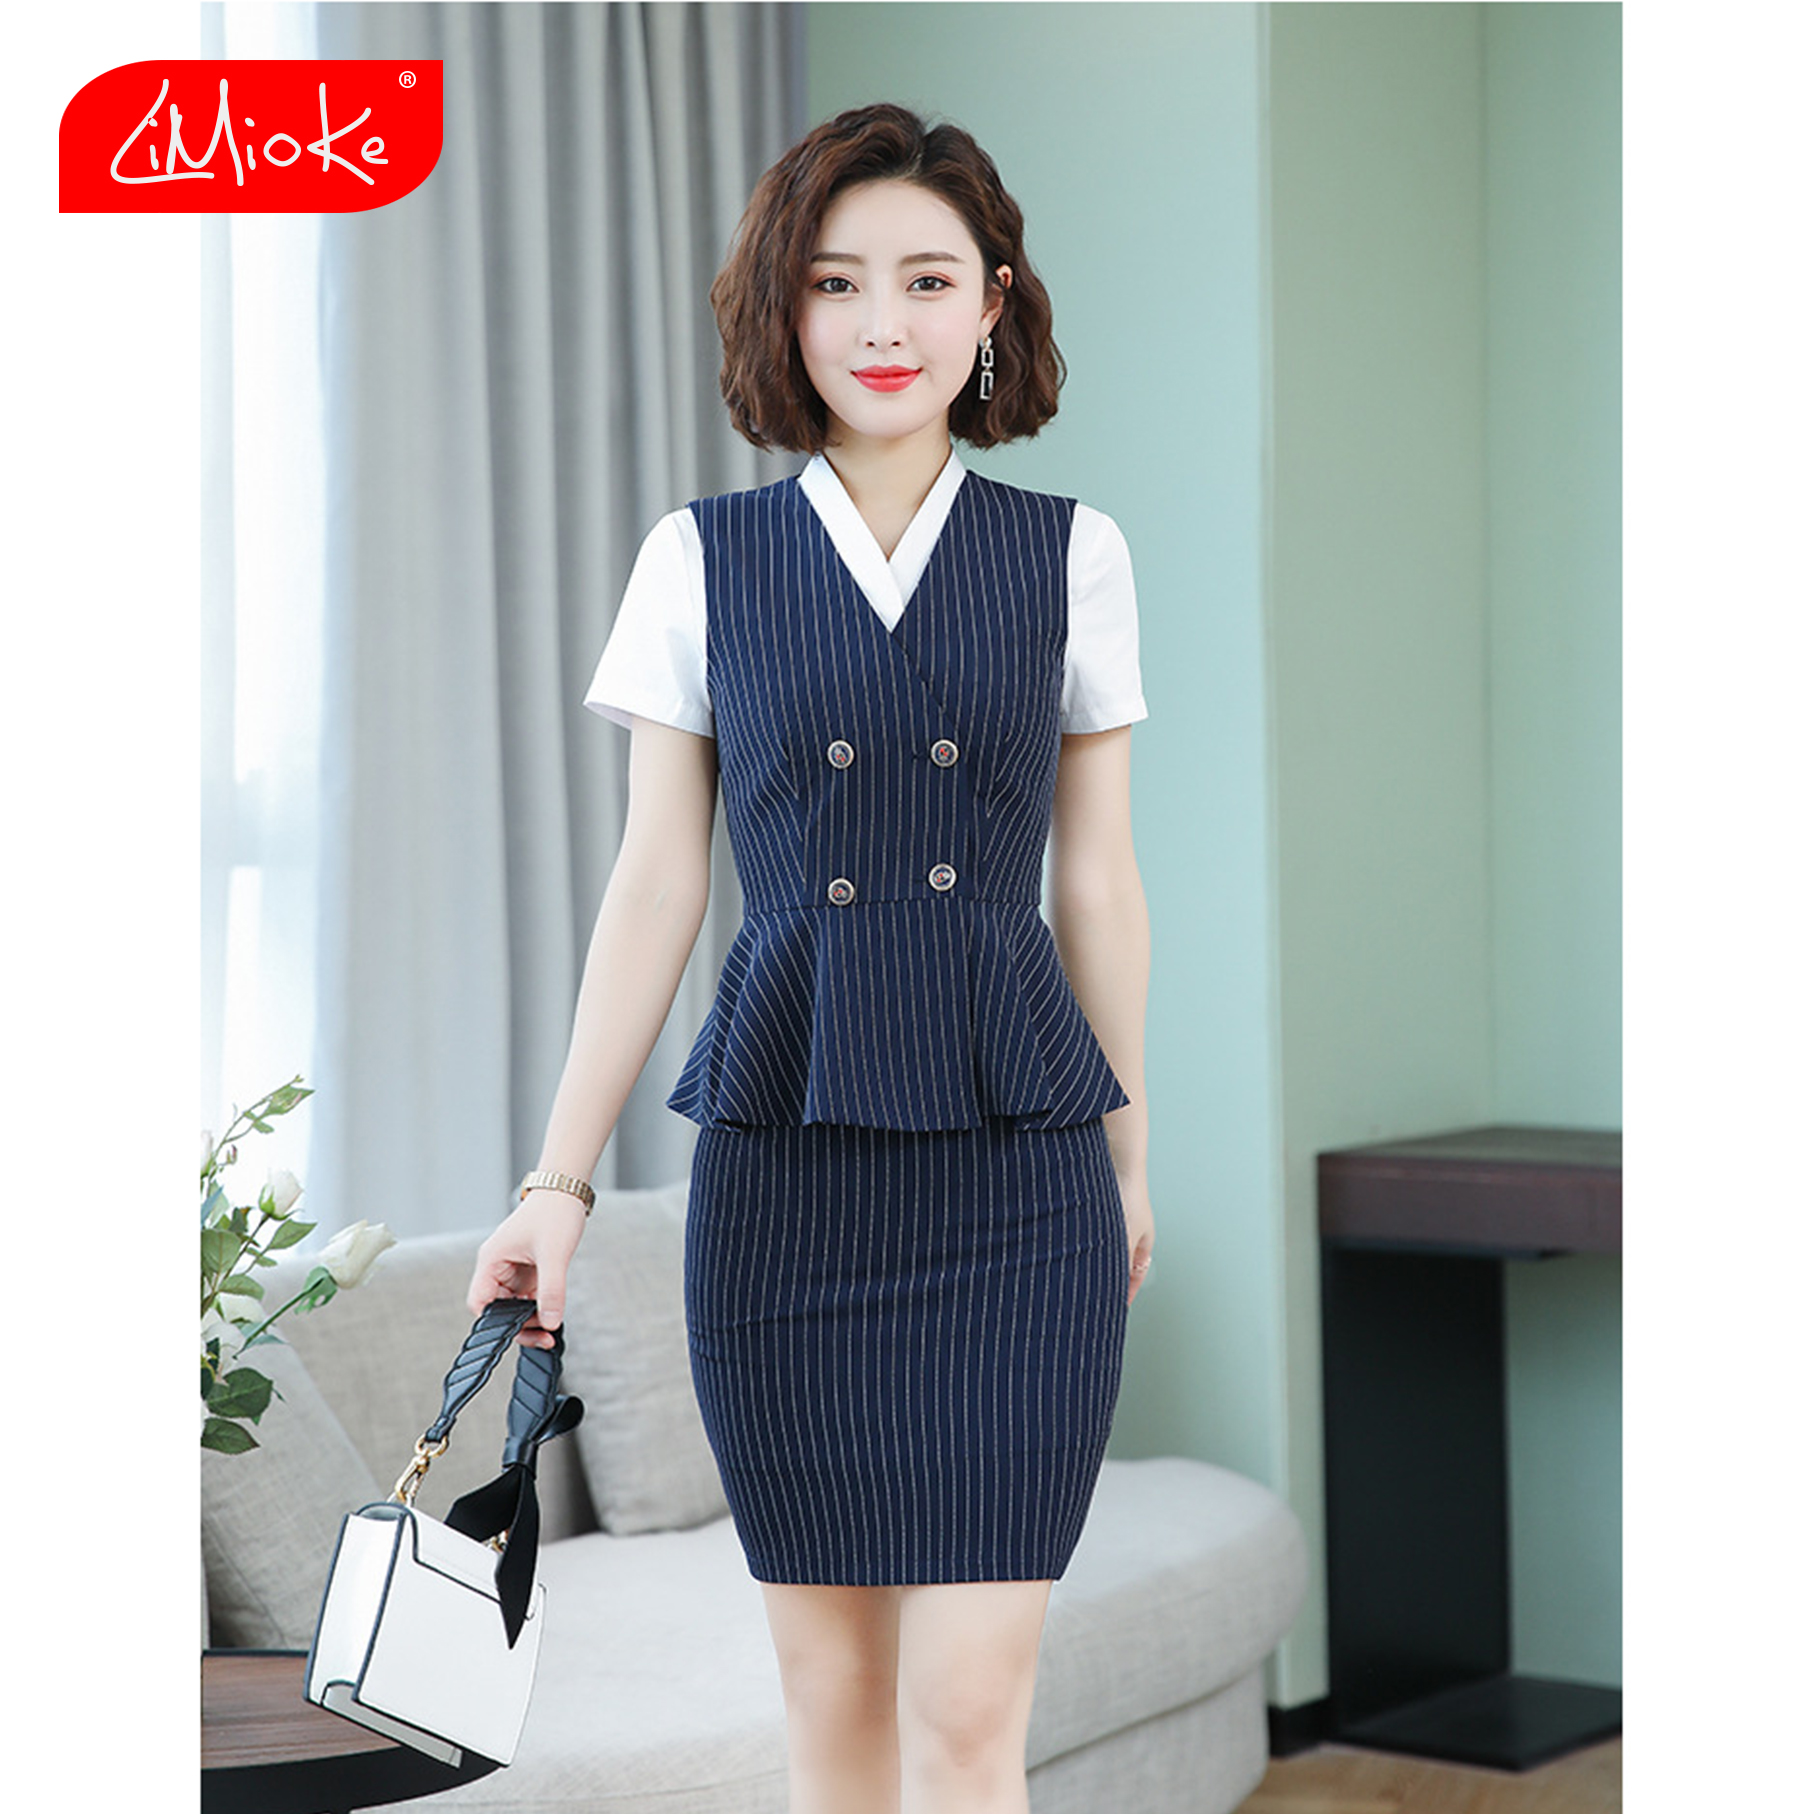 7fab8dd737281 China ladies suit com wholesale 🇨🇳 - Alibaba